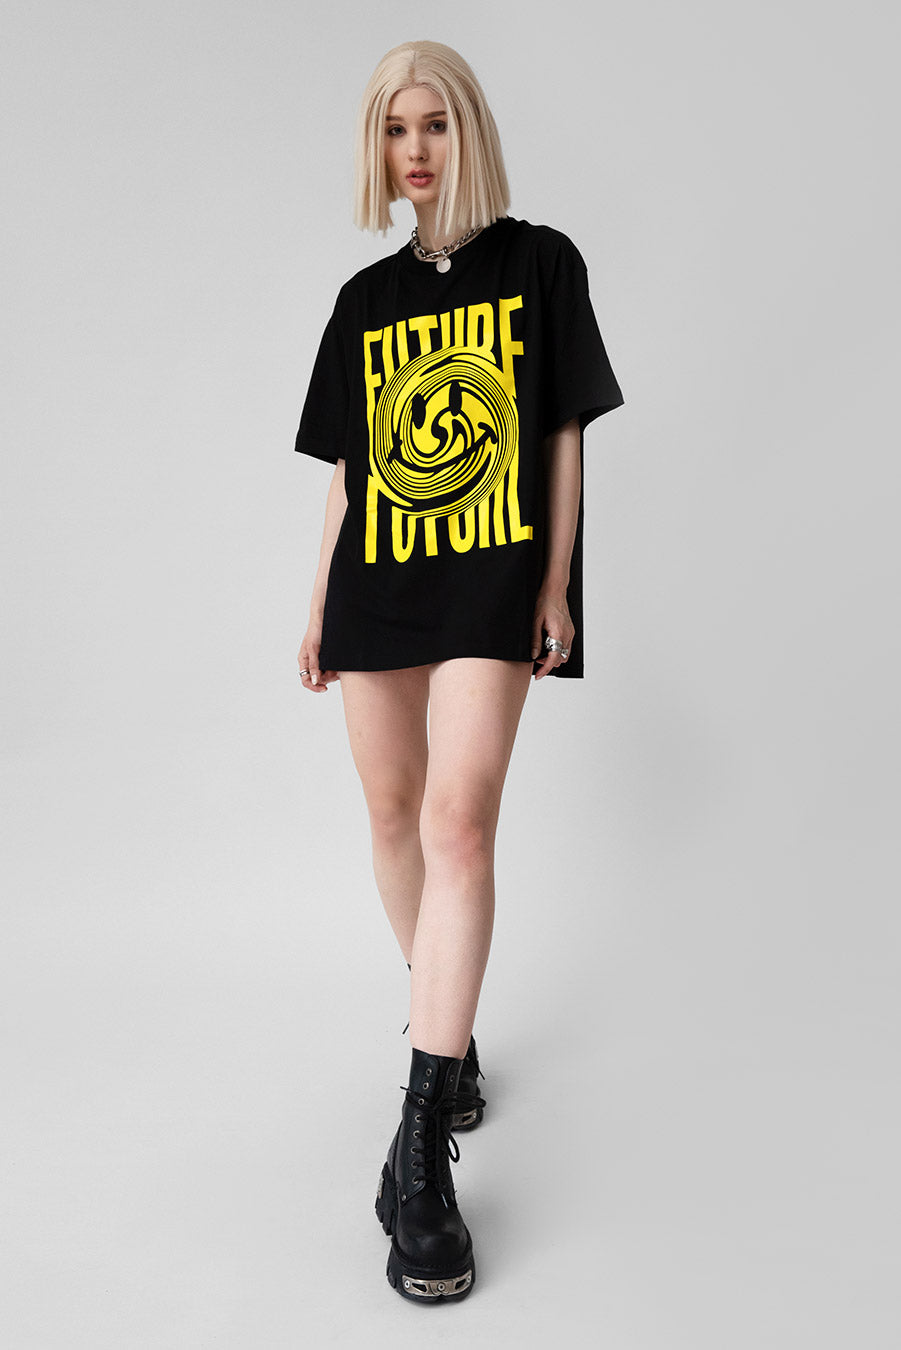 FTR SMILEY Tshirt